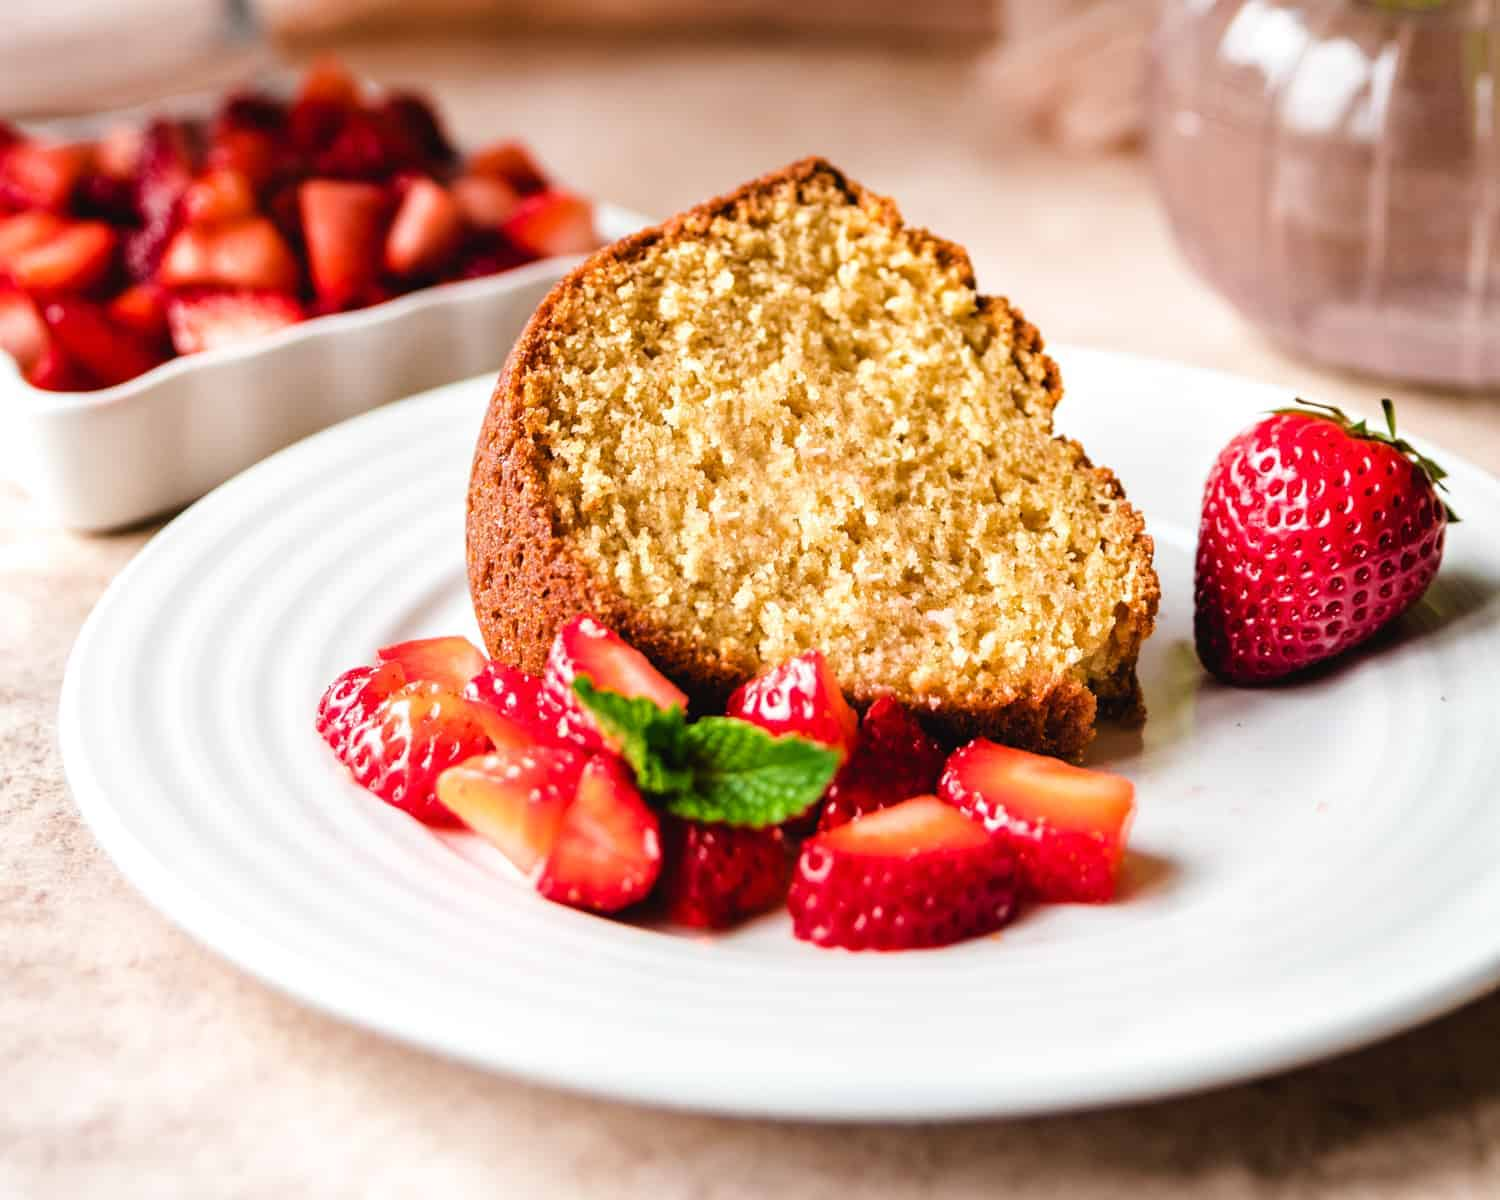 brown sugar bundt cake slide on a plate with strawberries